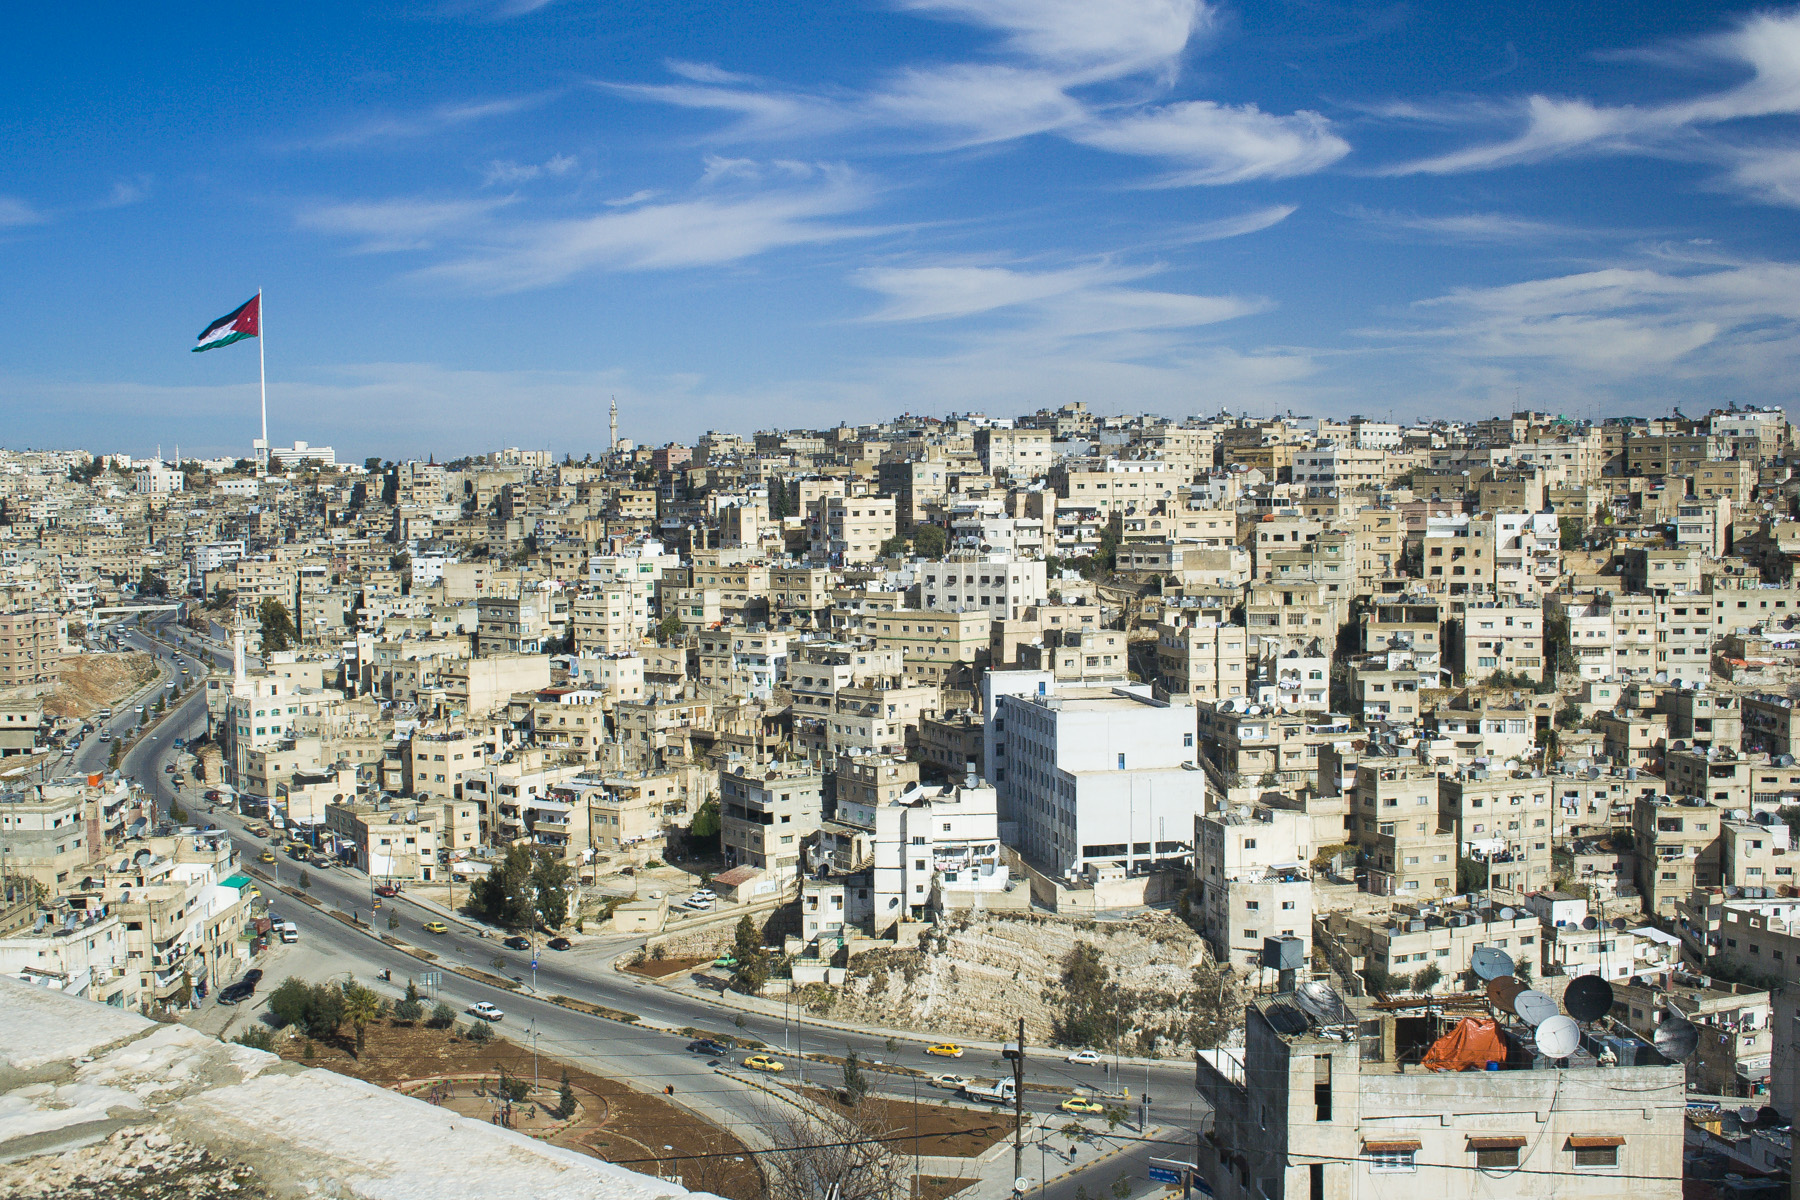 Amman: The Ugly and The Beautiful